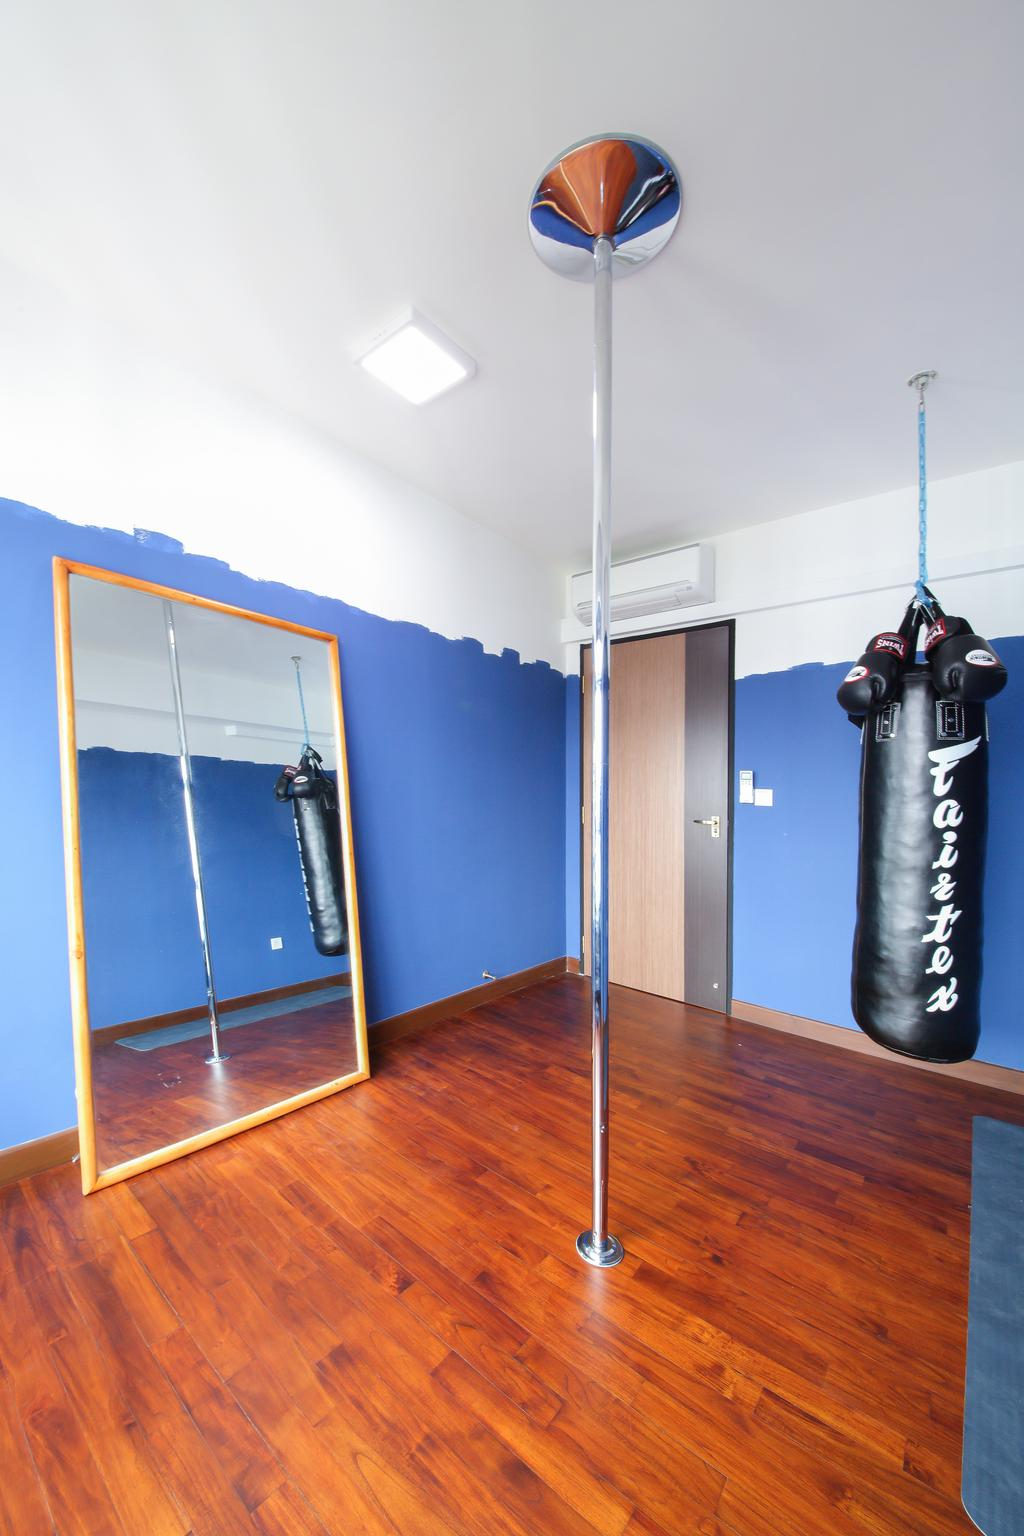 Scandinavian, HDB, Bedroom, Upper Serangoon Crescent, Interior Designer, Dap Atelier, Industrial, Wooden Floor, Wall Mounted Lights, Long Metallic Pole, Punching Bag, Blue Walls, Mirror, Air Condition, Door, Sliding Door